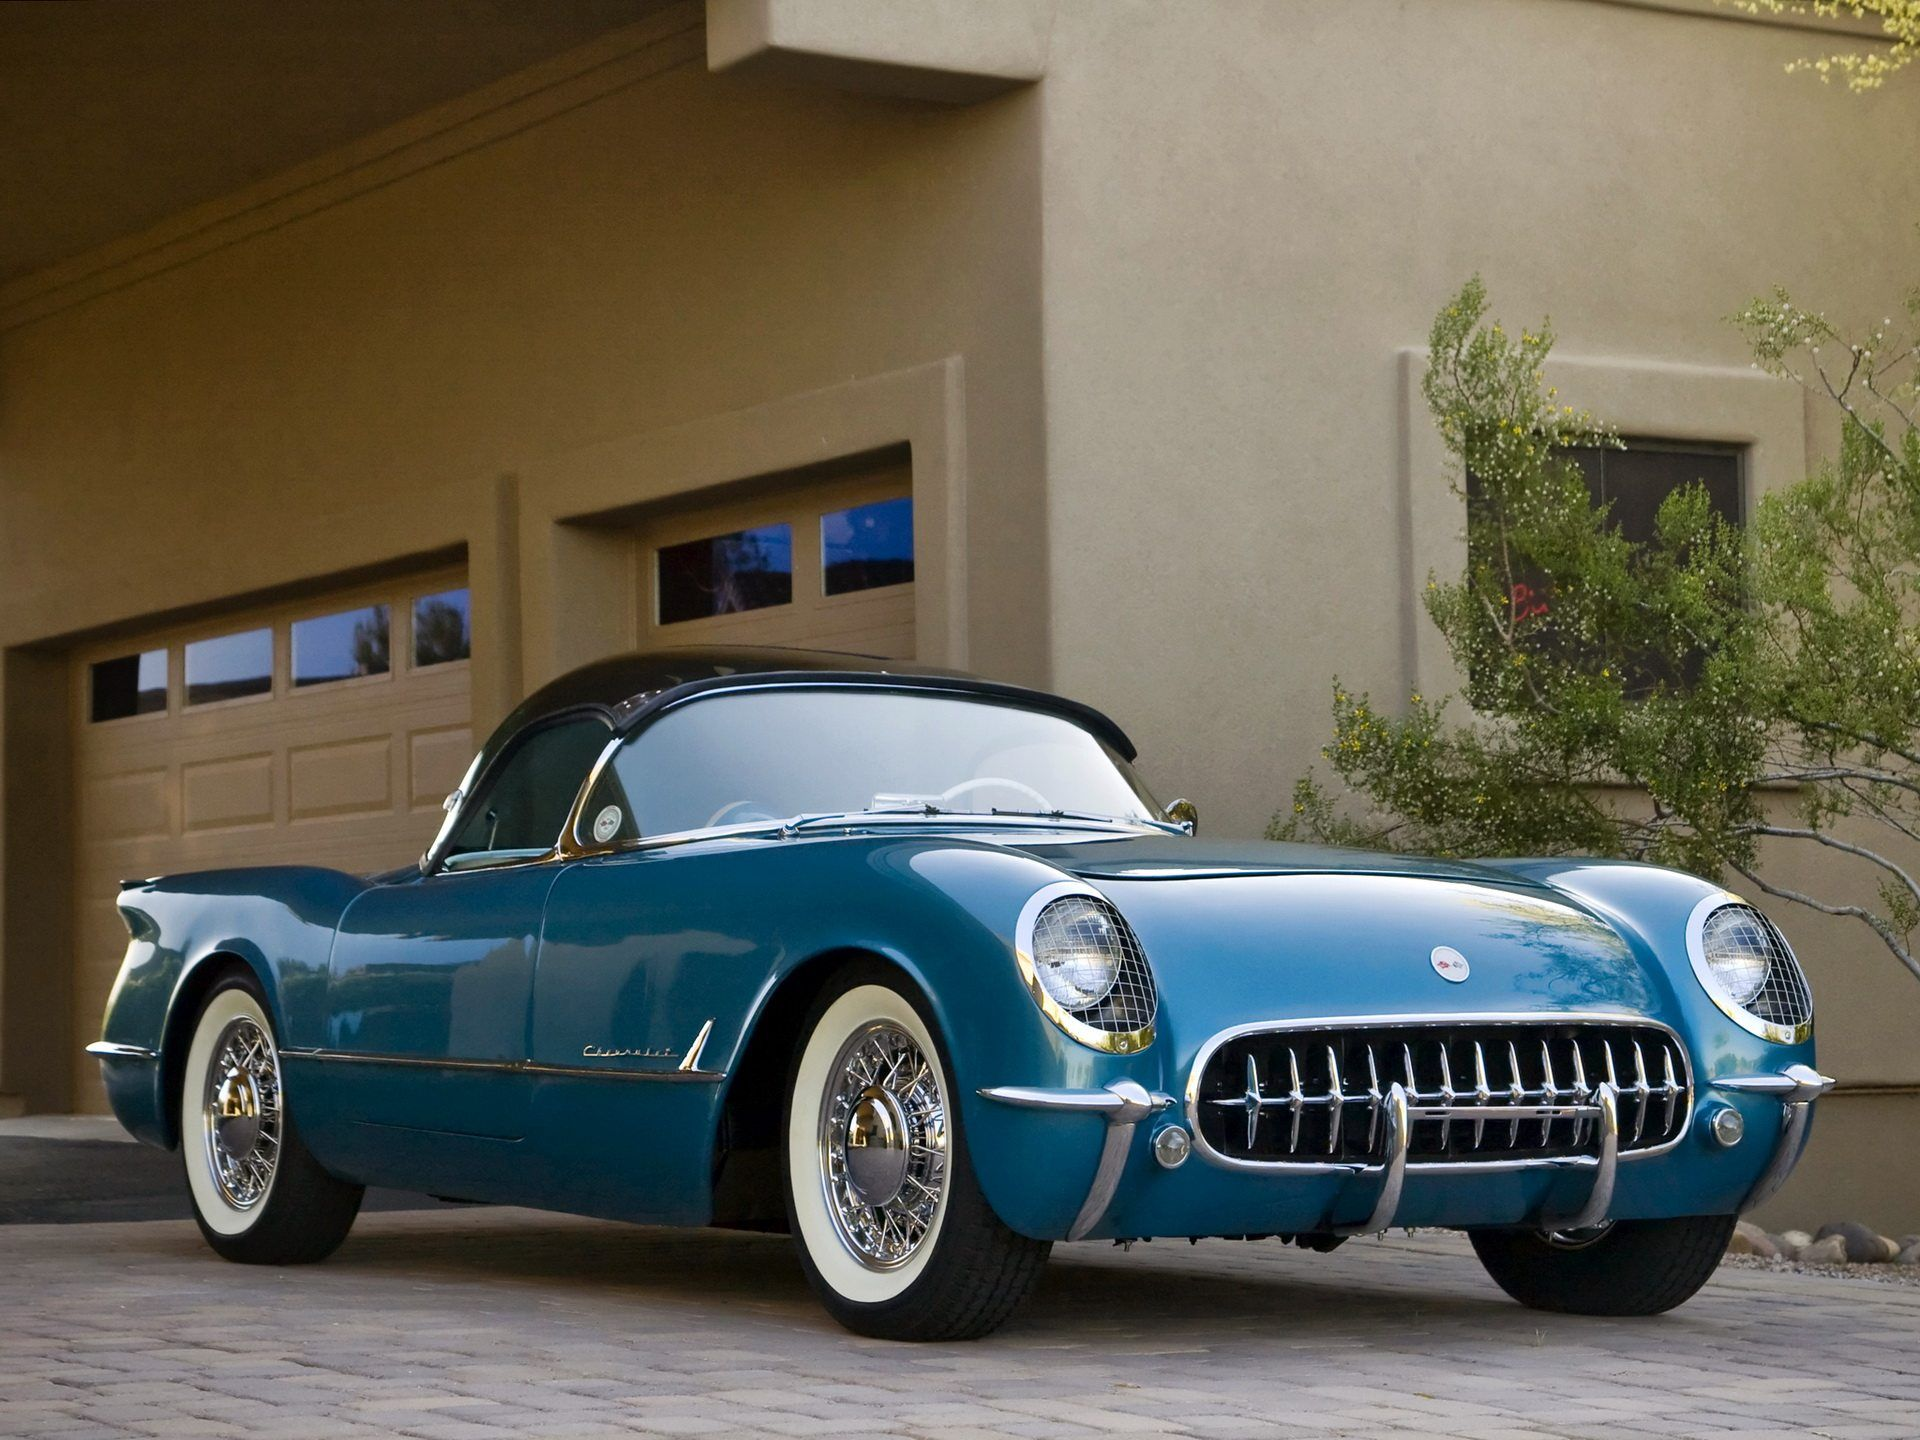 1954 C1 Corvette | Ultimate Guide (Overview, Specs, VIN Info, Problems & More)